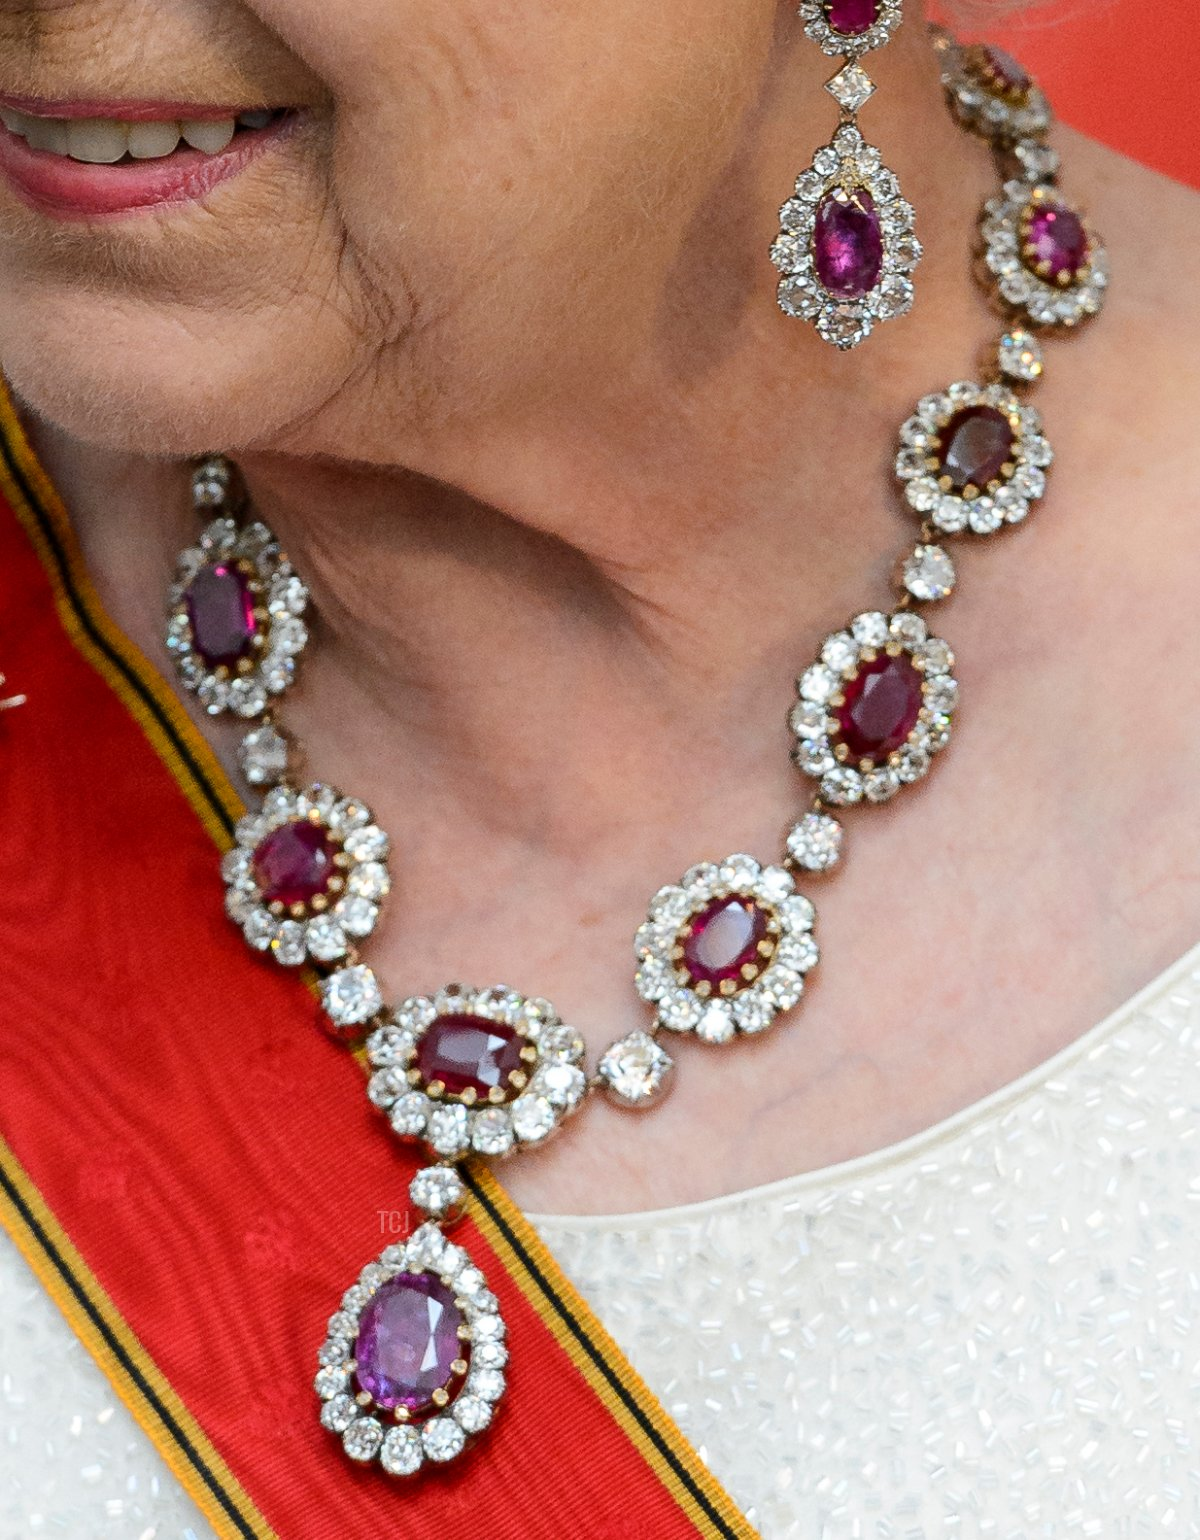 The Crown Ruby Necklace